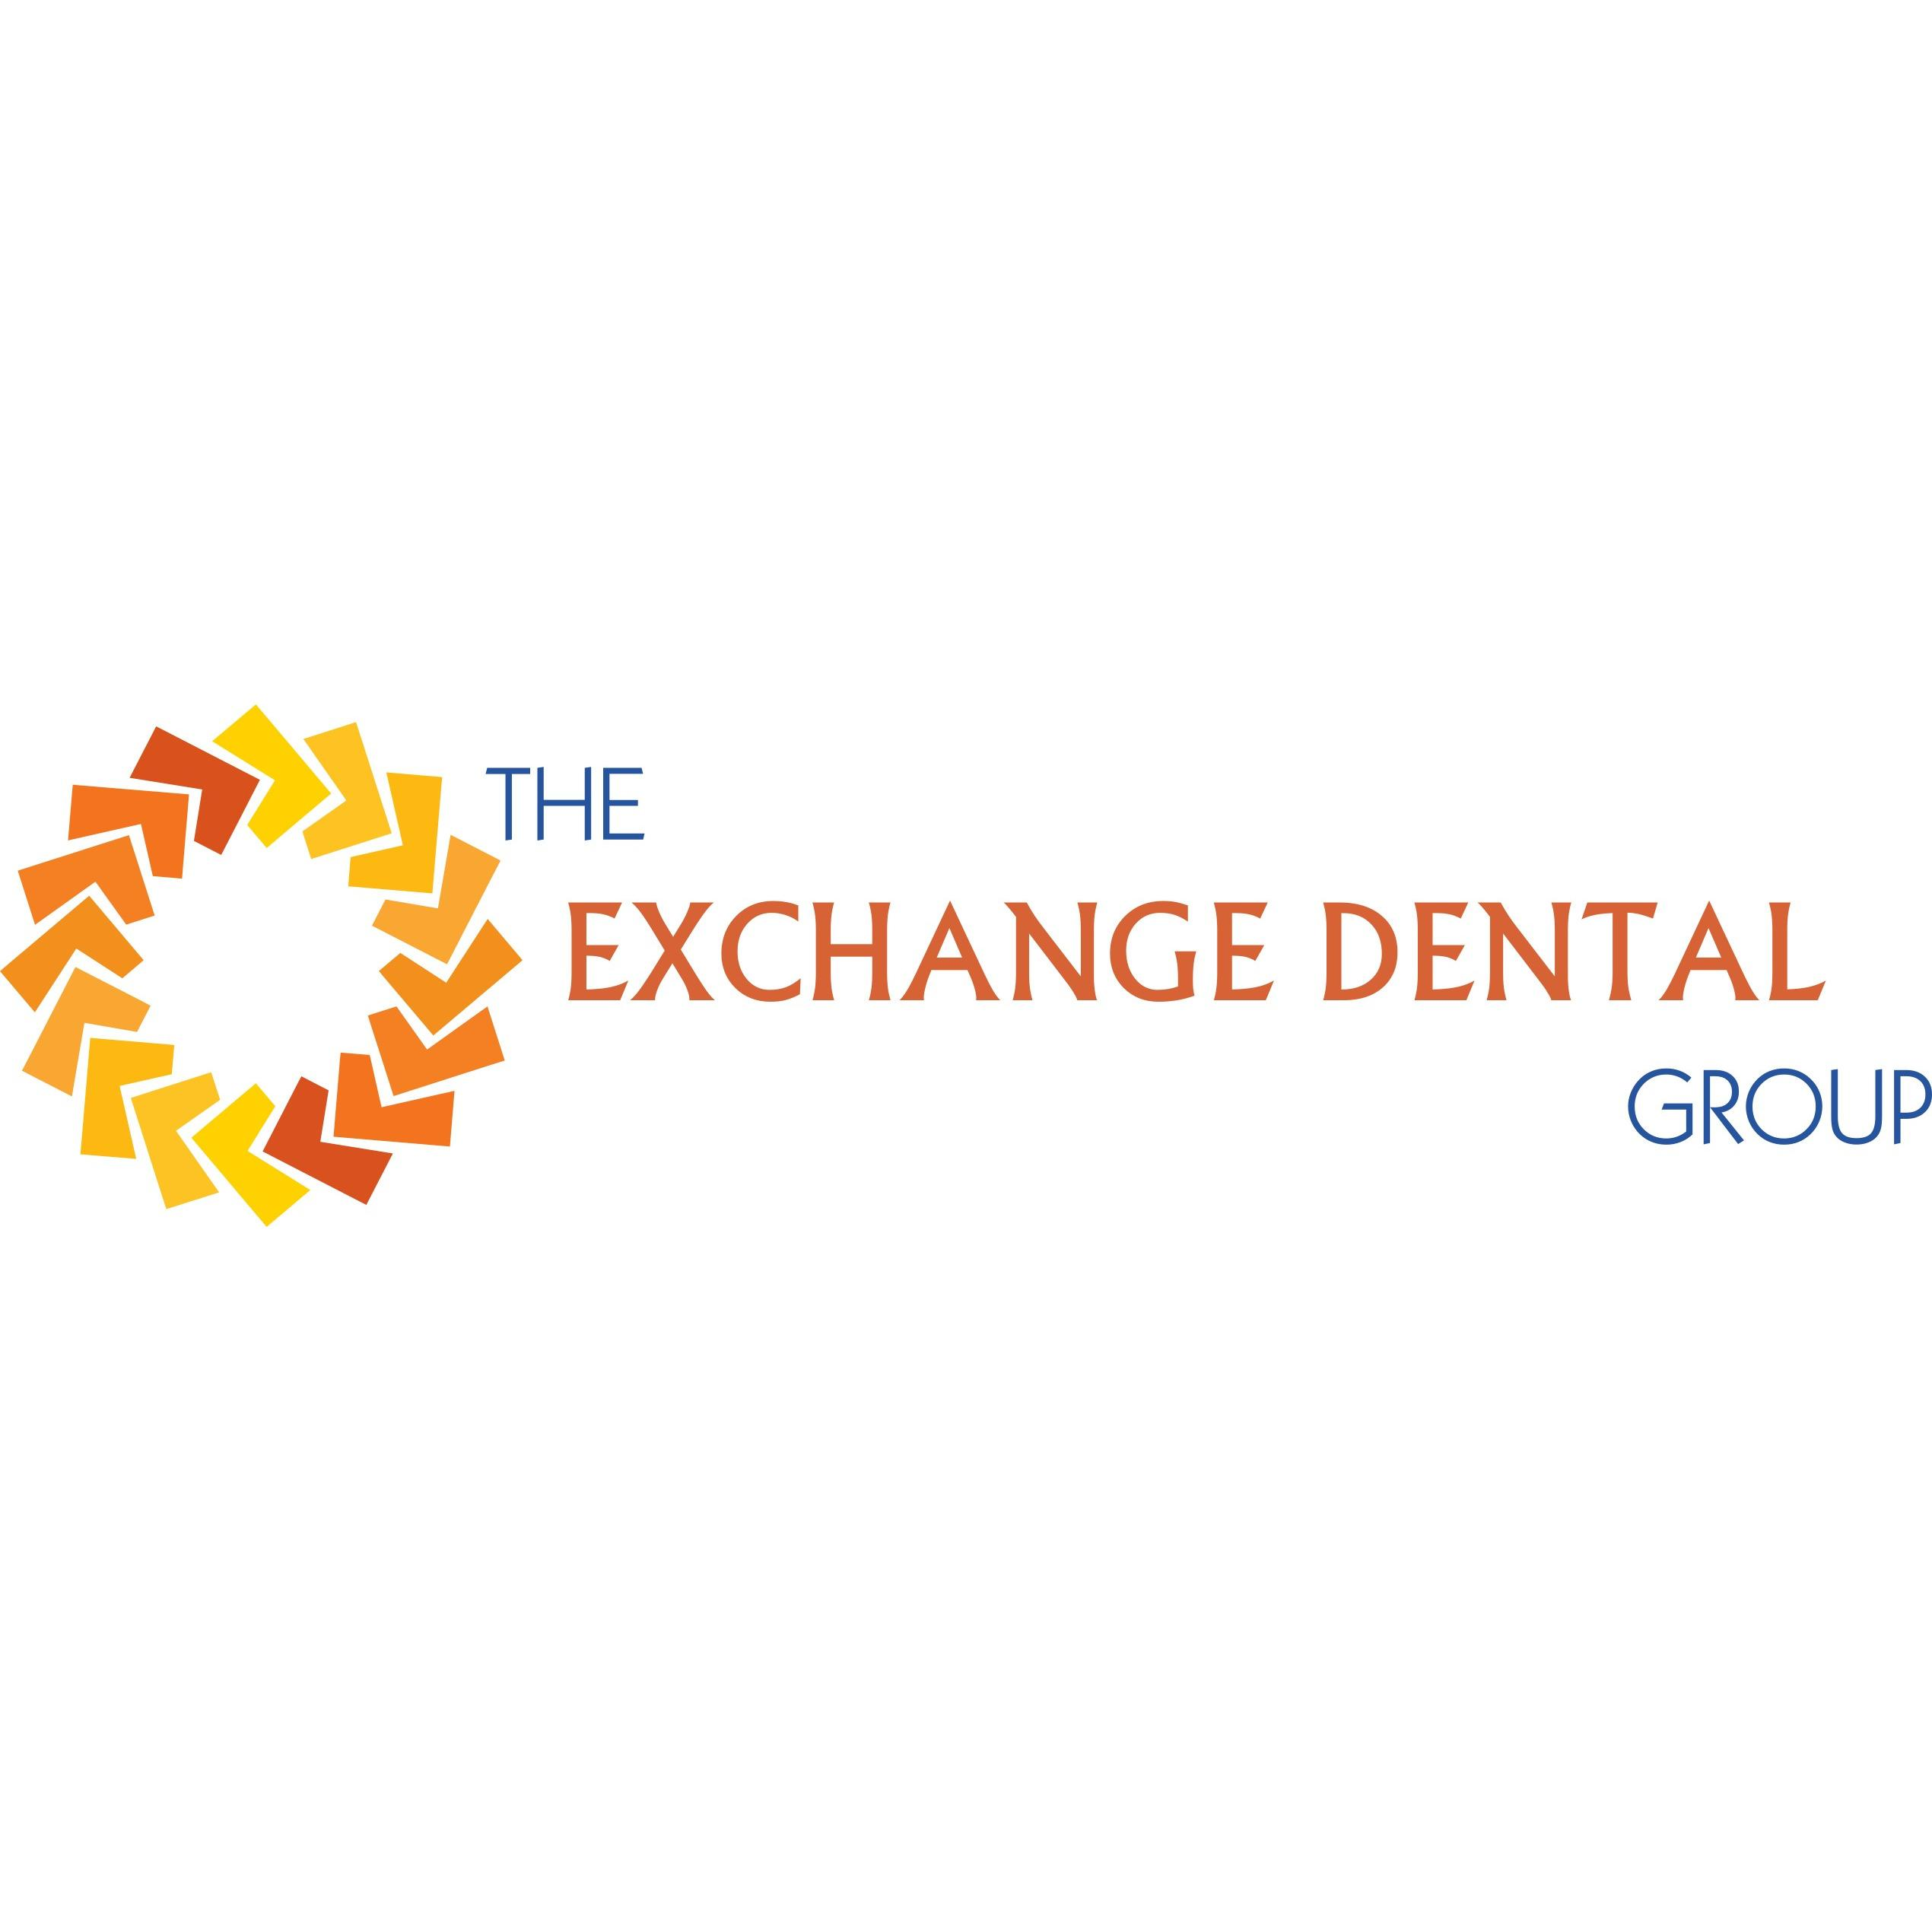 The Exchange Dental Group